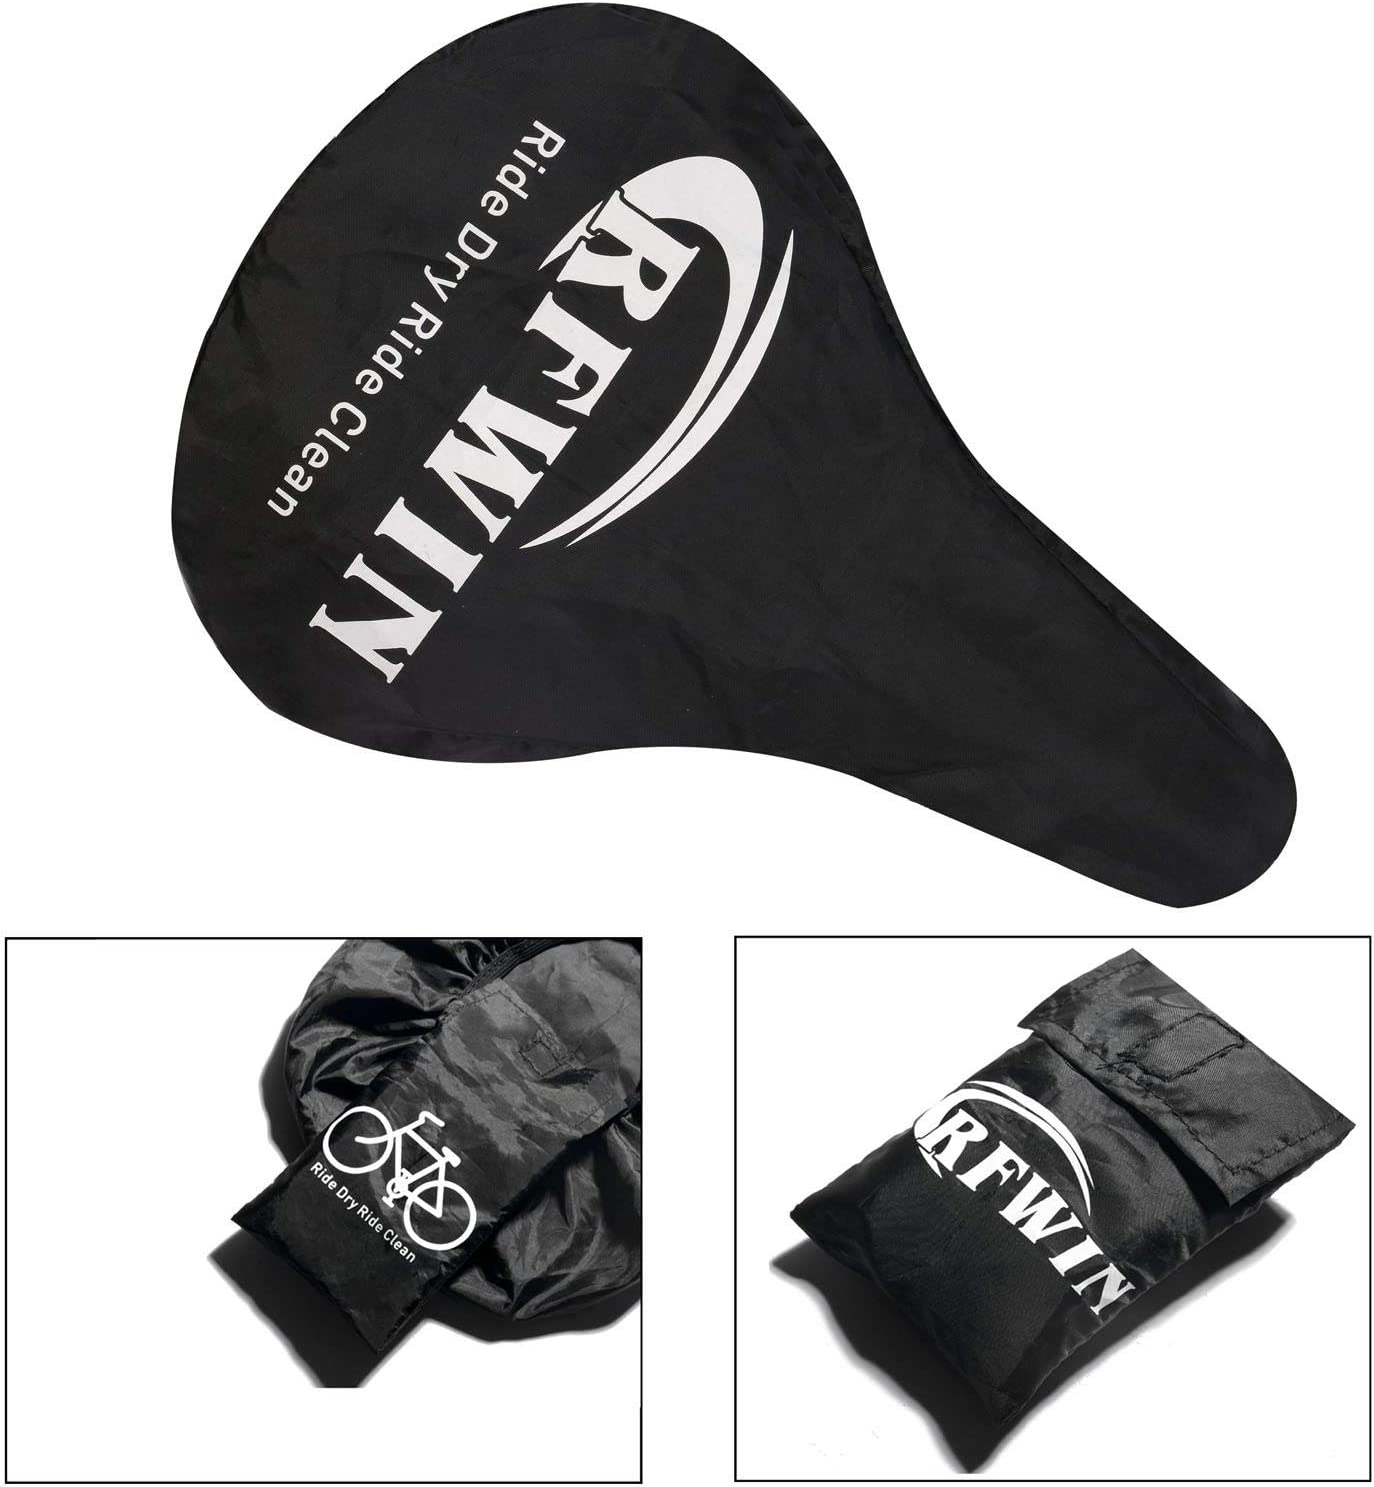 RFWIN Gel Bike Seat Cover Stationary Bikes Water /& Dust Resistant Bike Saddle Cover Fits Mountain Bikes Soft Comfortable Bicycle Seat Cushion